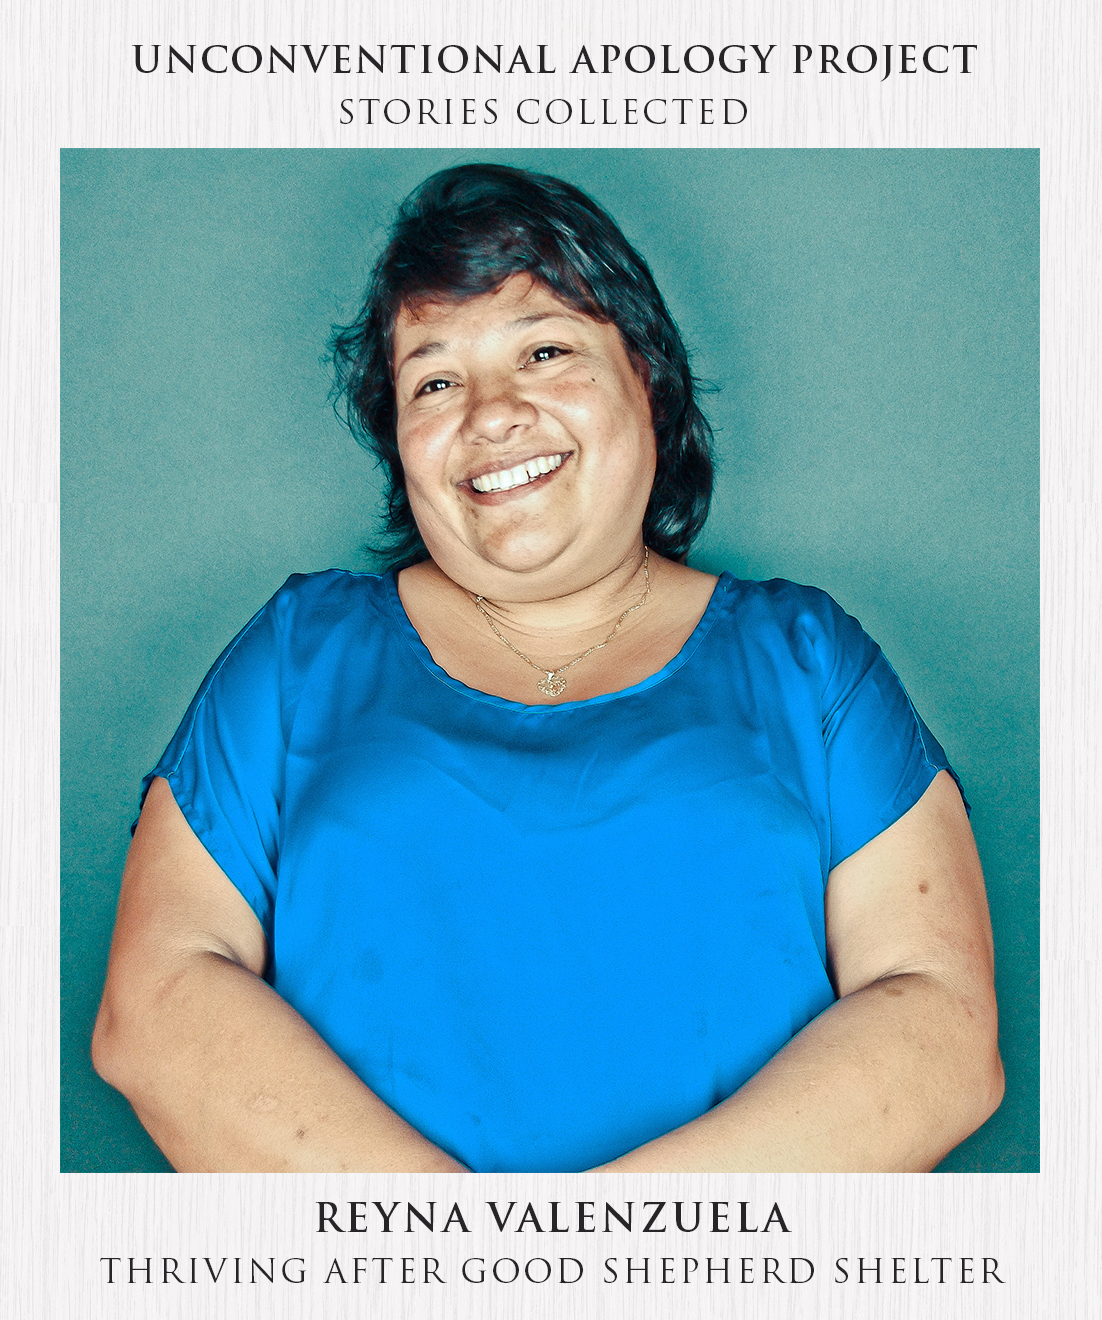 Reyna Valenzuela in Stories Collected